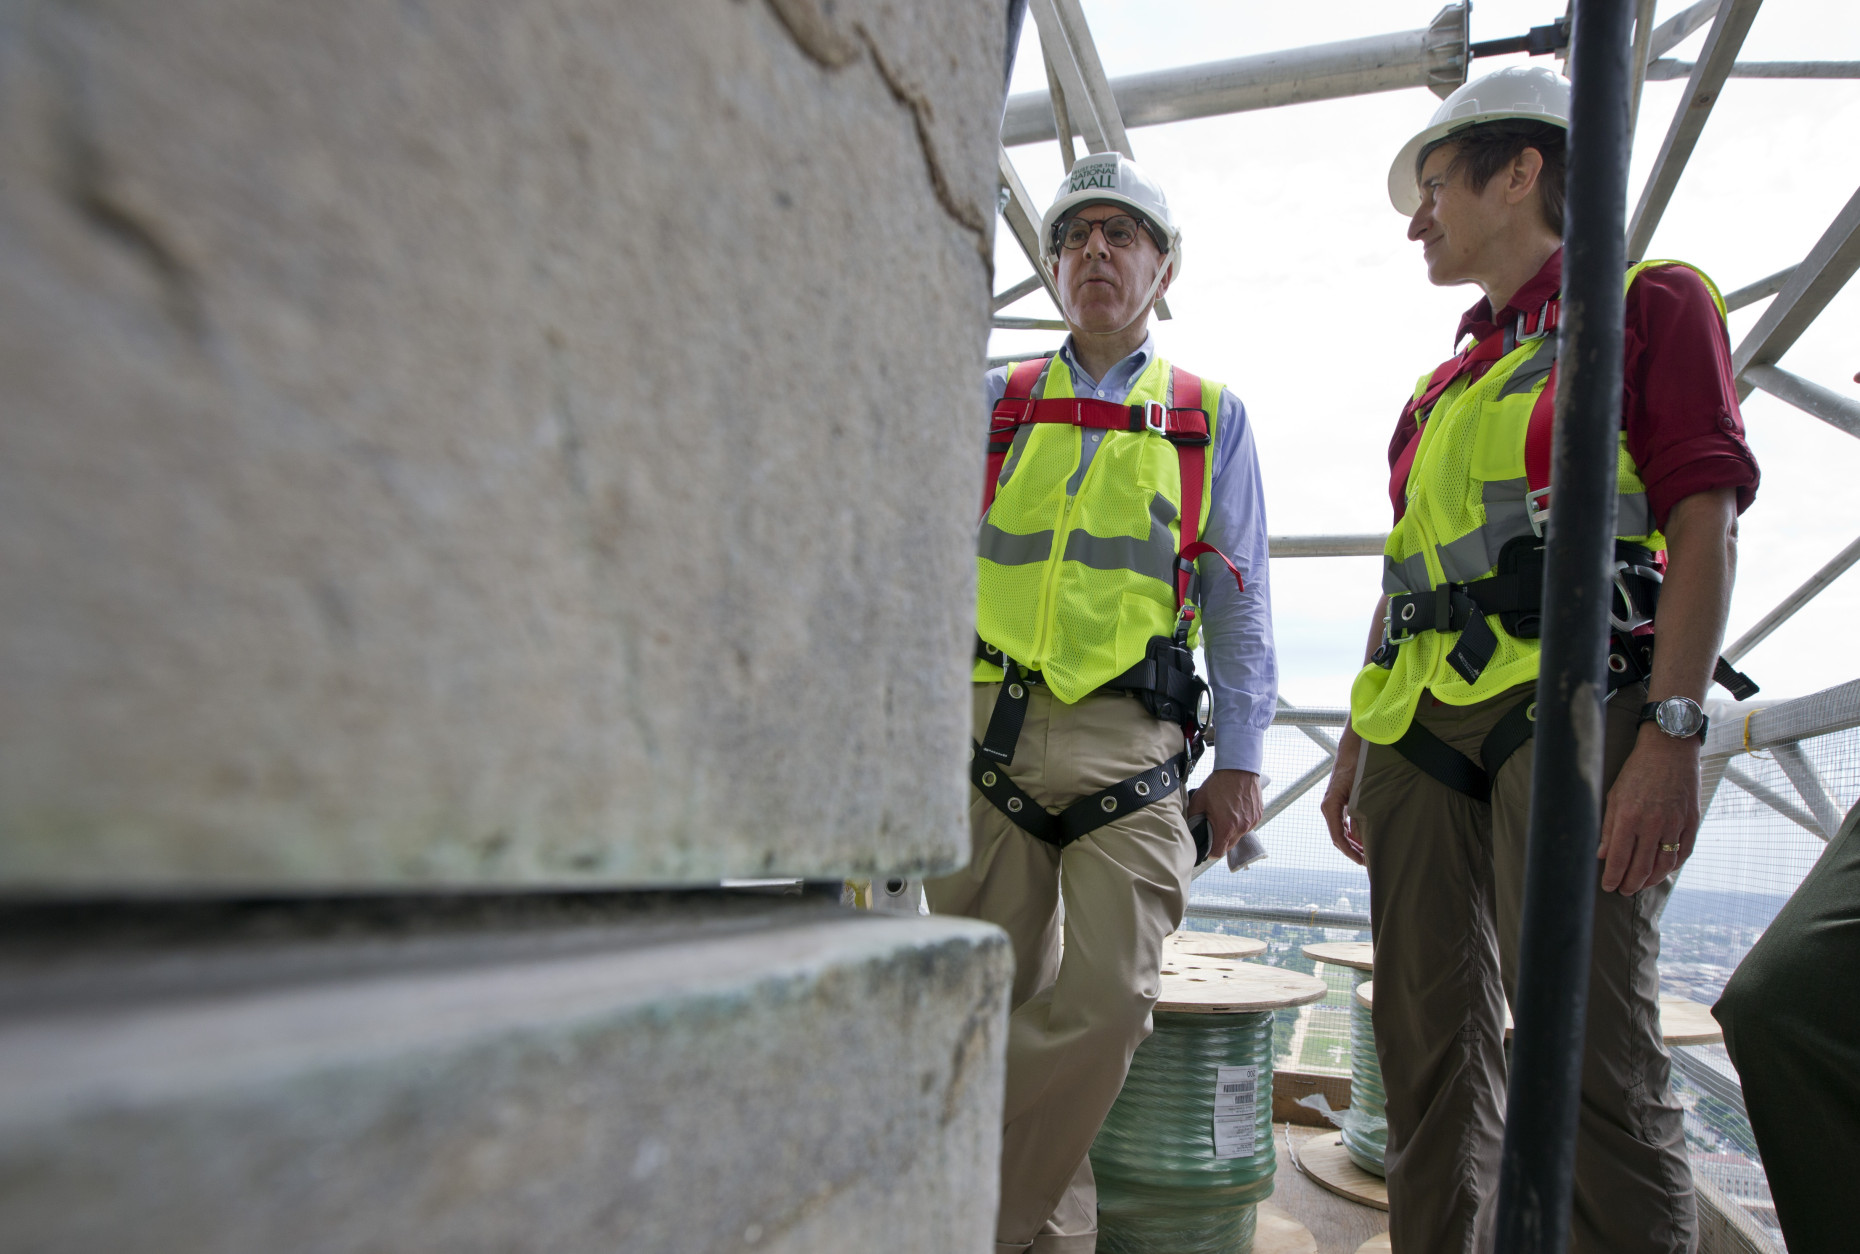 Philanthropist David Rubenstein, left, and Secretary of the Interior Sally Jewell, stand during an interview with The Associated Press at the 491-foot level of the scaffolding surrounding the Washington Monument, Sunday, June 2, 2013 in Washington. The monument has been closed since the 2011 earthquake and half of the needed repairs have been funded by a $7.5 million donation from Rubenstein. The Associated Press had a look at some of the worst damage and the preparations underway to begin making repairs. Stone by stone, engineers are reviewing cracks, missing pieces and broken mortar now that huge scaffolding has been built around the towering symbol of the nation's capital. (AP Photo/Alex Brandon)